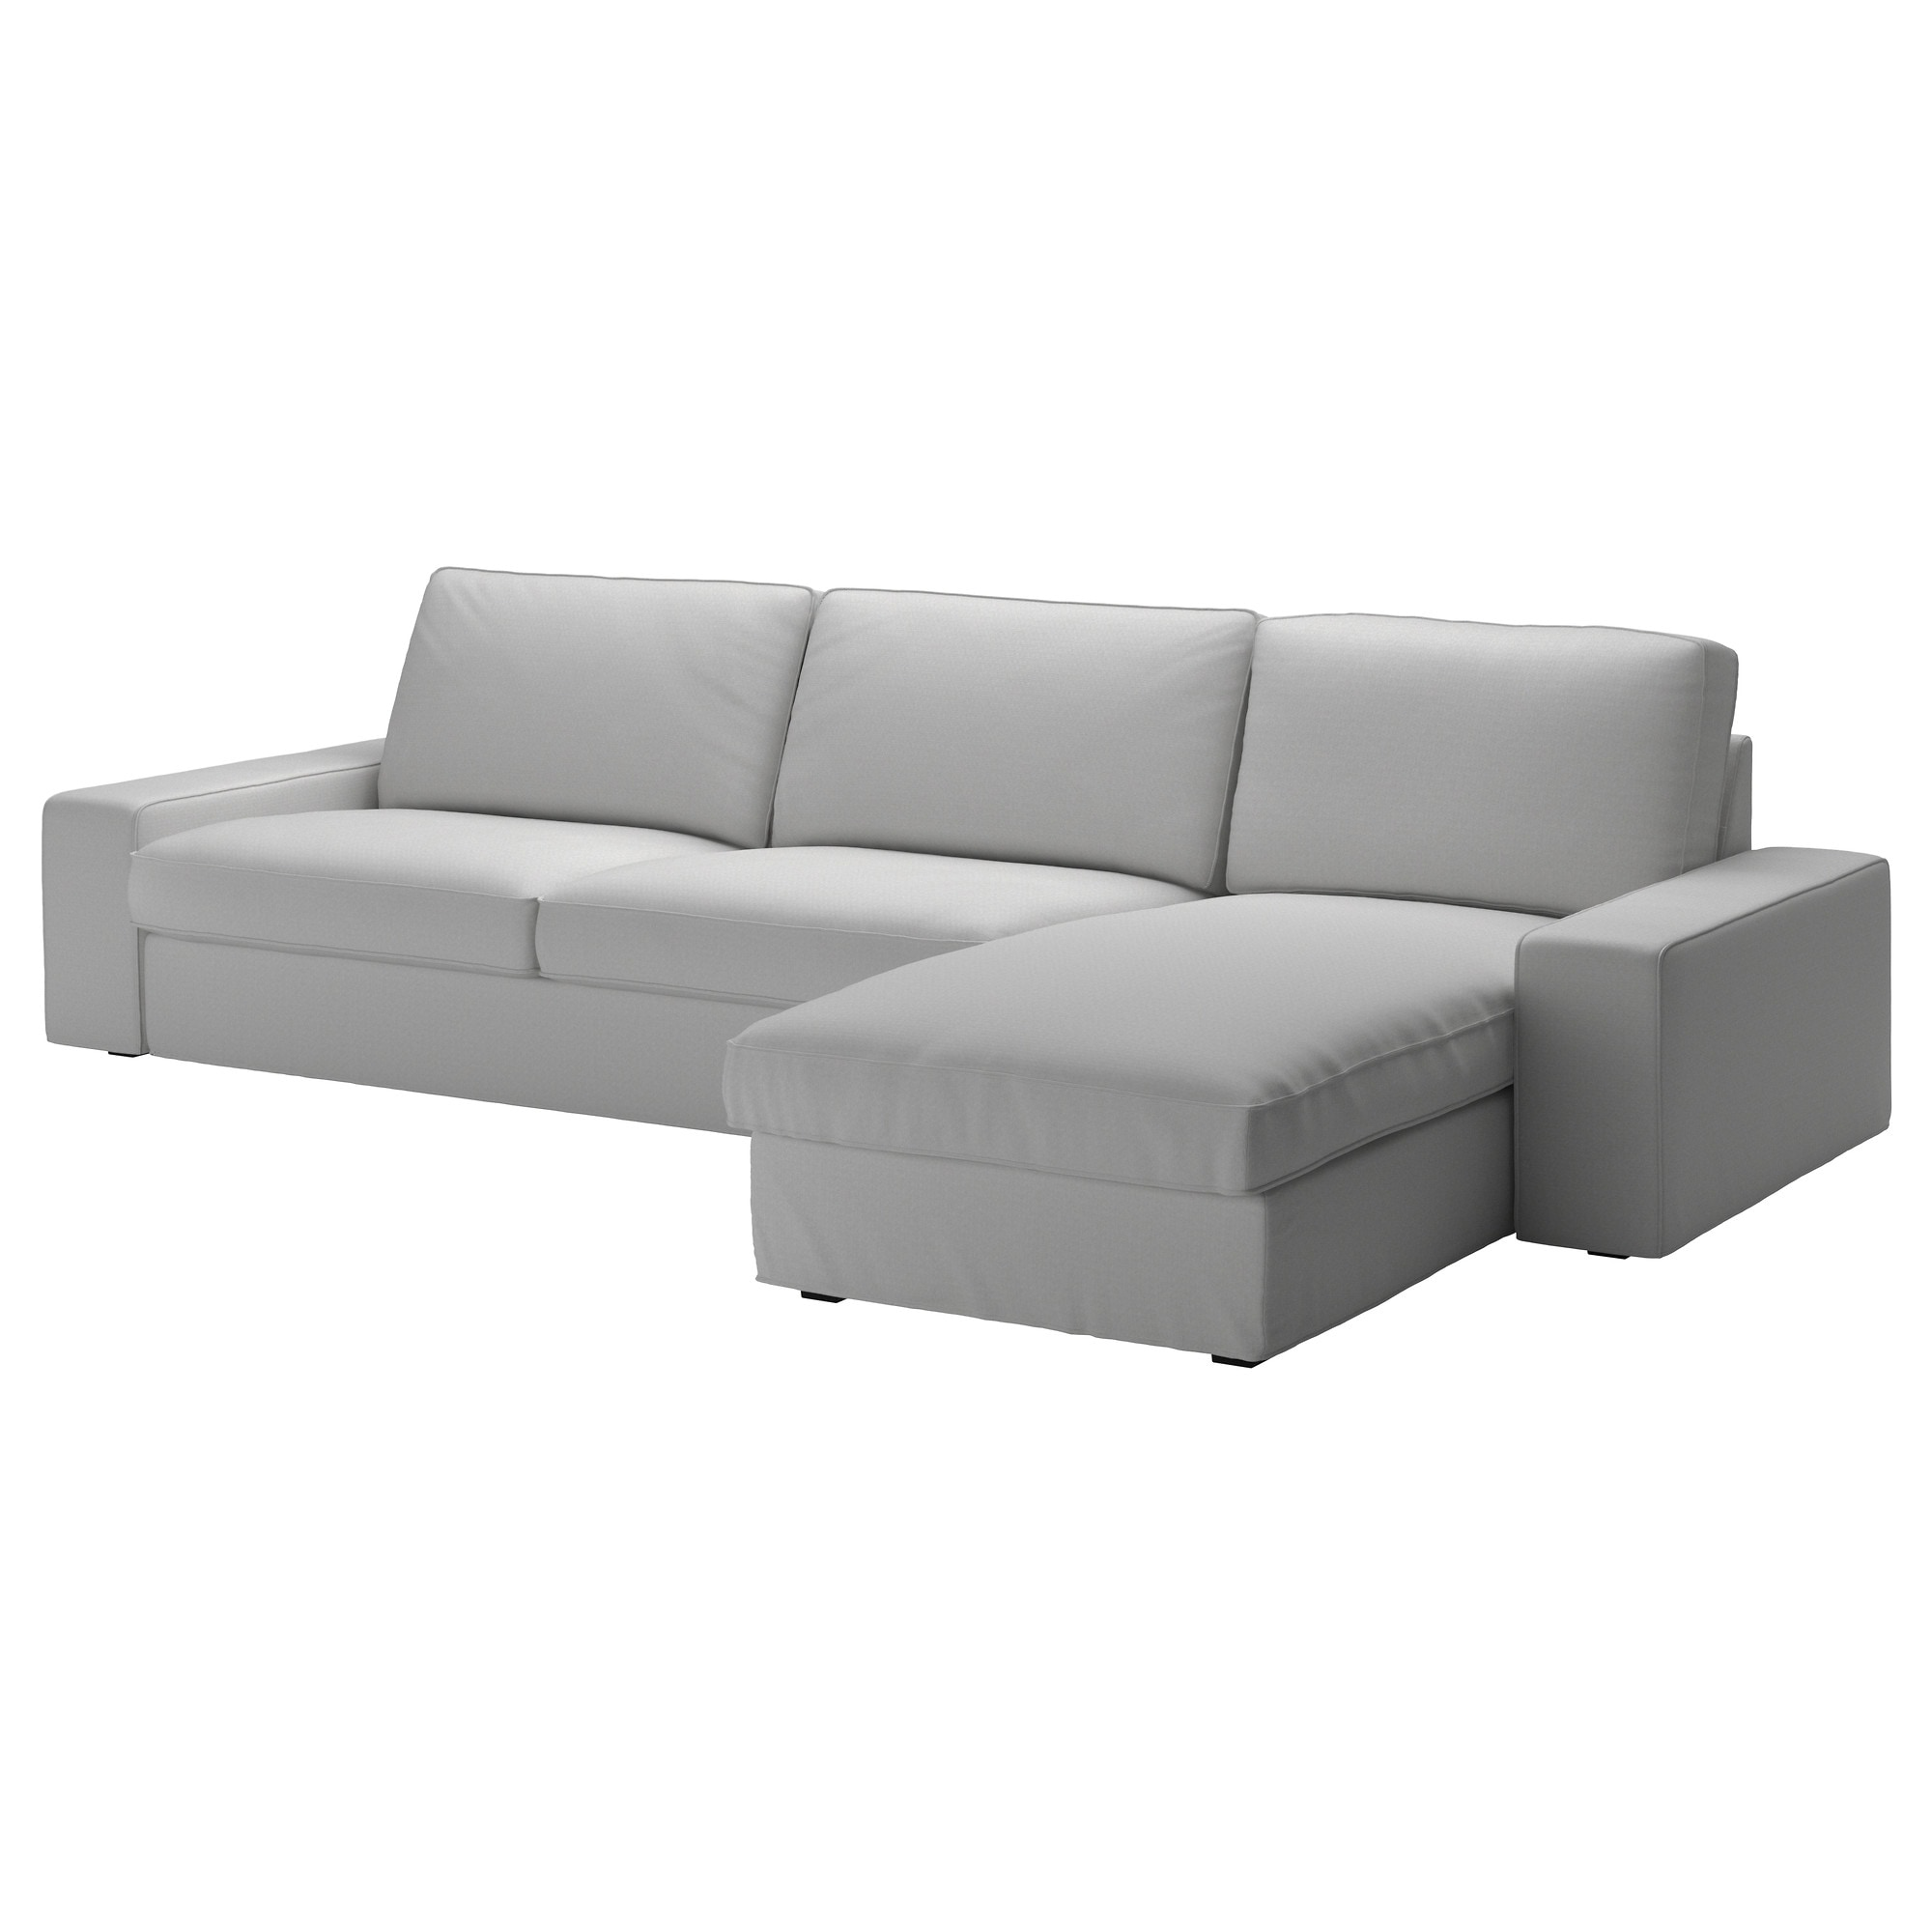 Sofa ikea  KIVIK 4-seat sofa - Orrsta light grey - IKEA